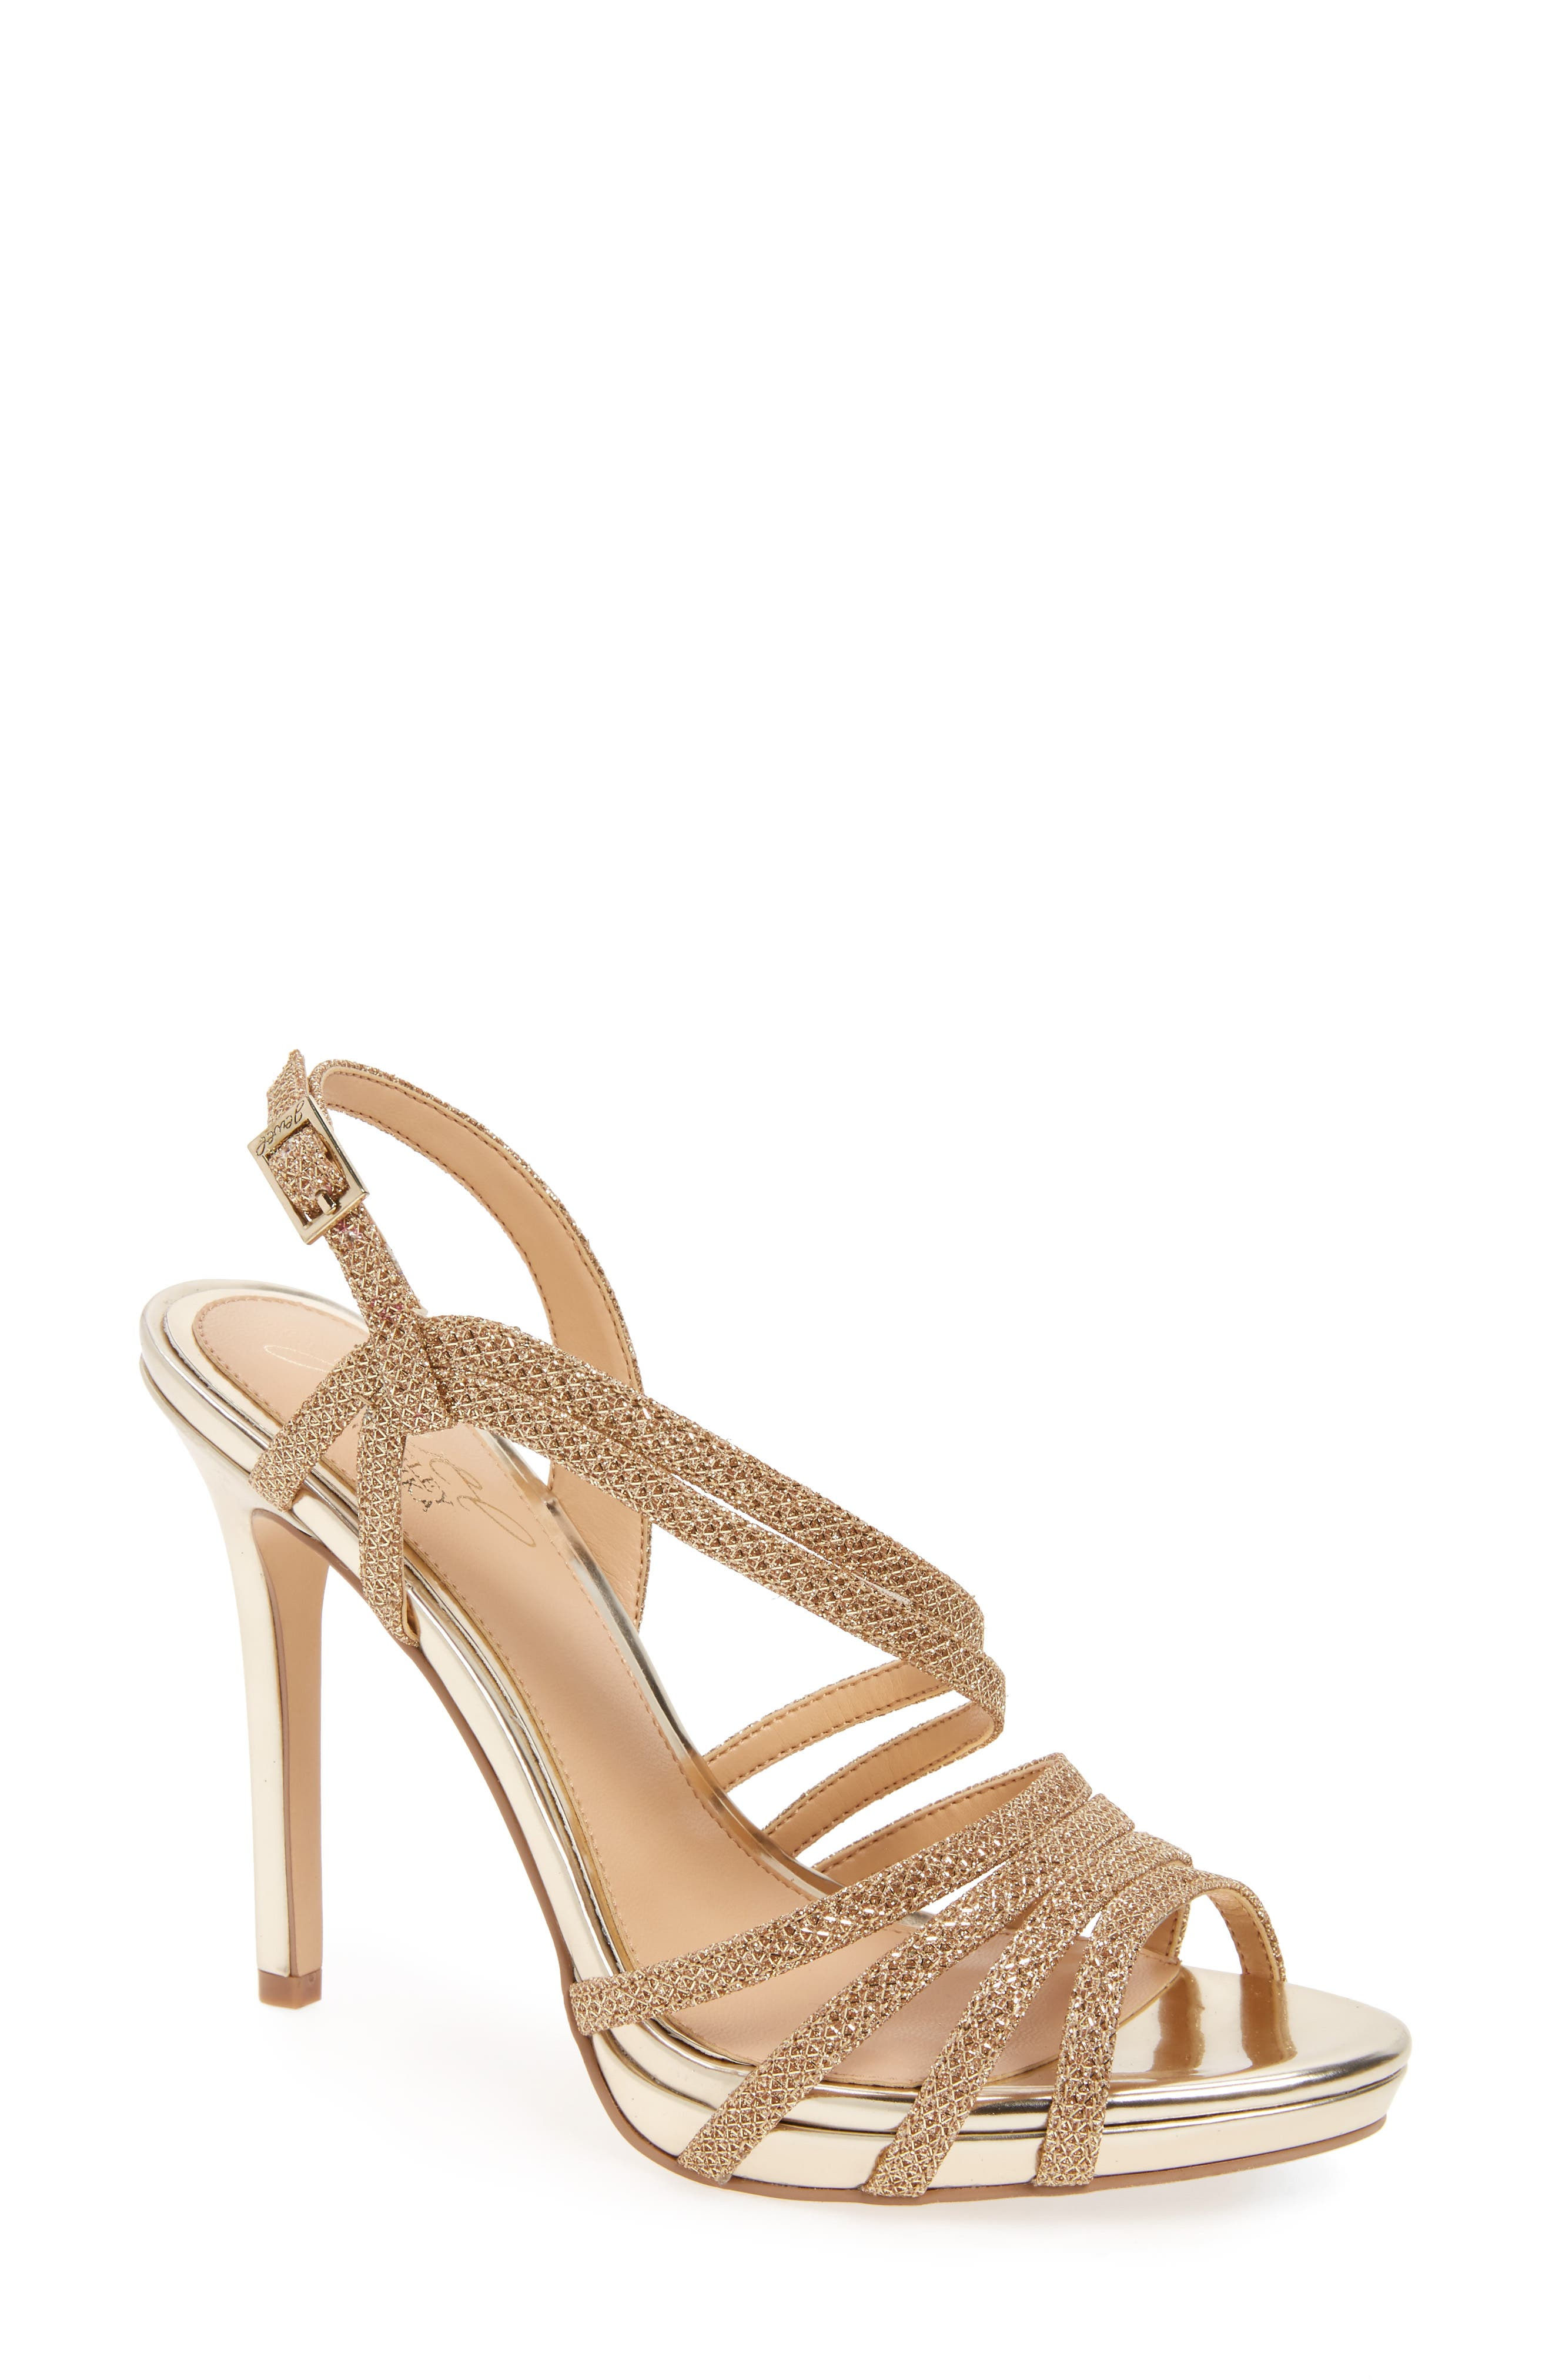 Humble Strappy Sandal,                             Main thumbnail 1, color,                             Gold Glitter Fabric